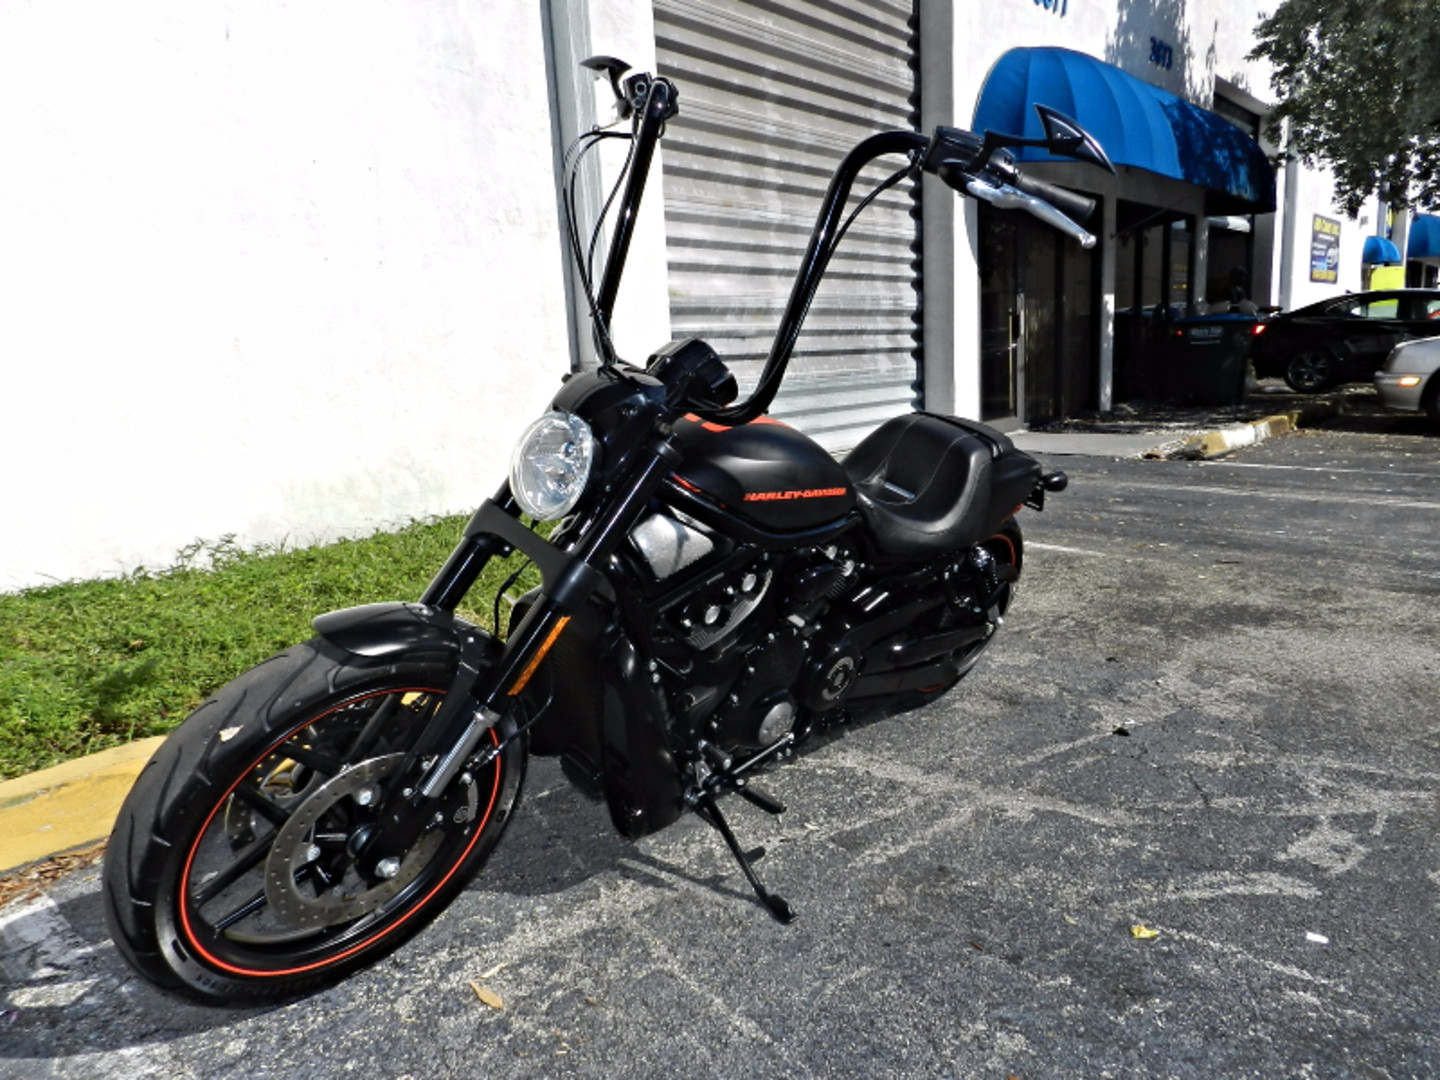 2013 harley davidson night rod special v rod vrscdx city florida mc cycles. Black Bedroom Furniture Sets. Home Design Ideas